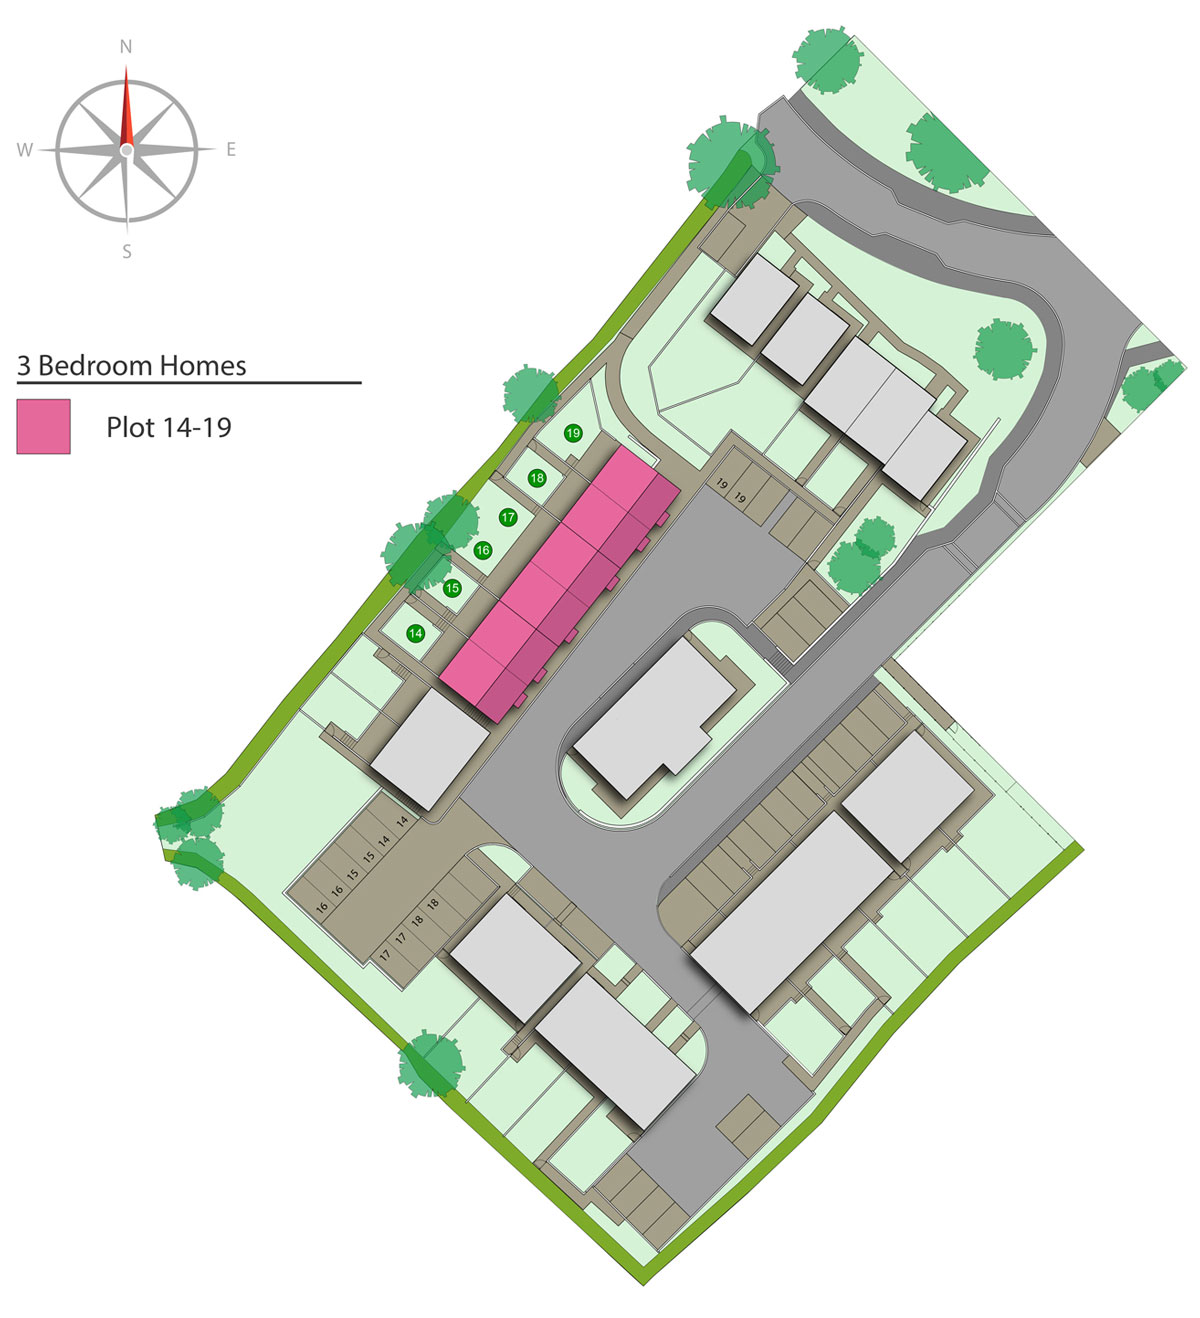 Parc an Bre  New Homes Development - Site Layout